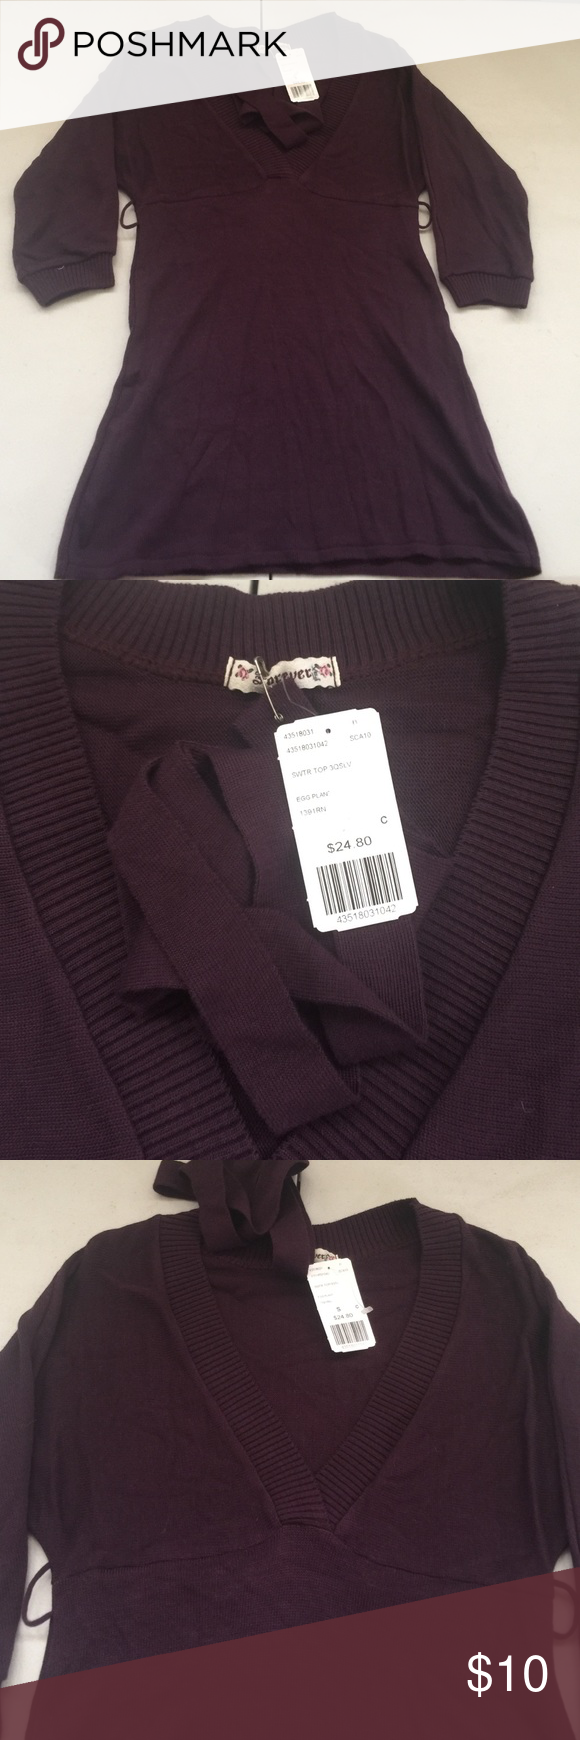 Quarter sleeve purple blouse New with tags 21 Tops Blouses